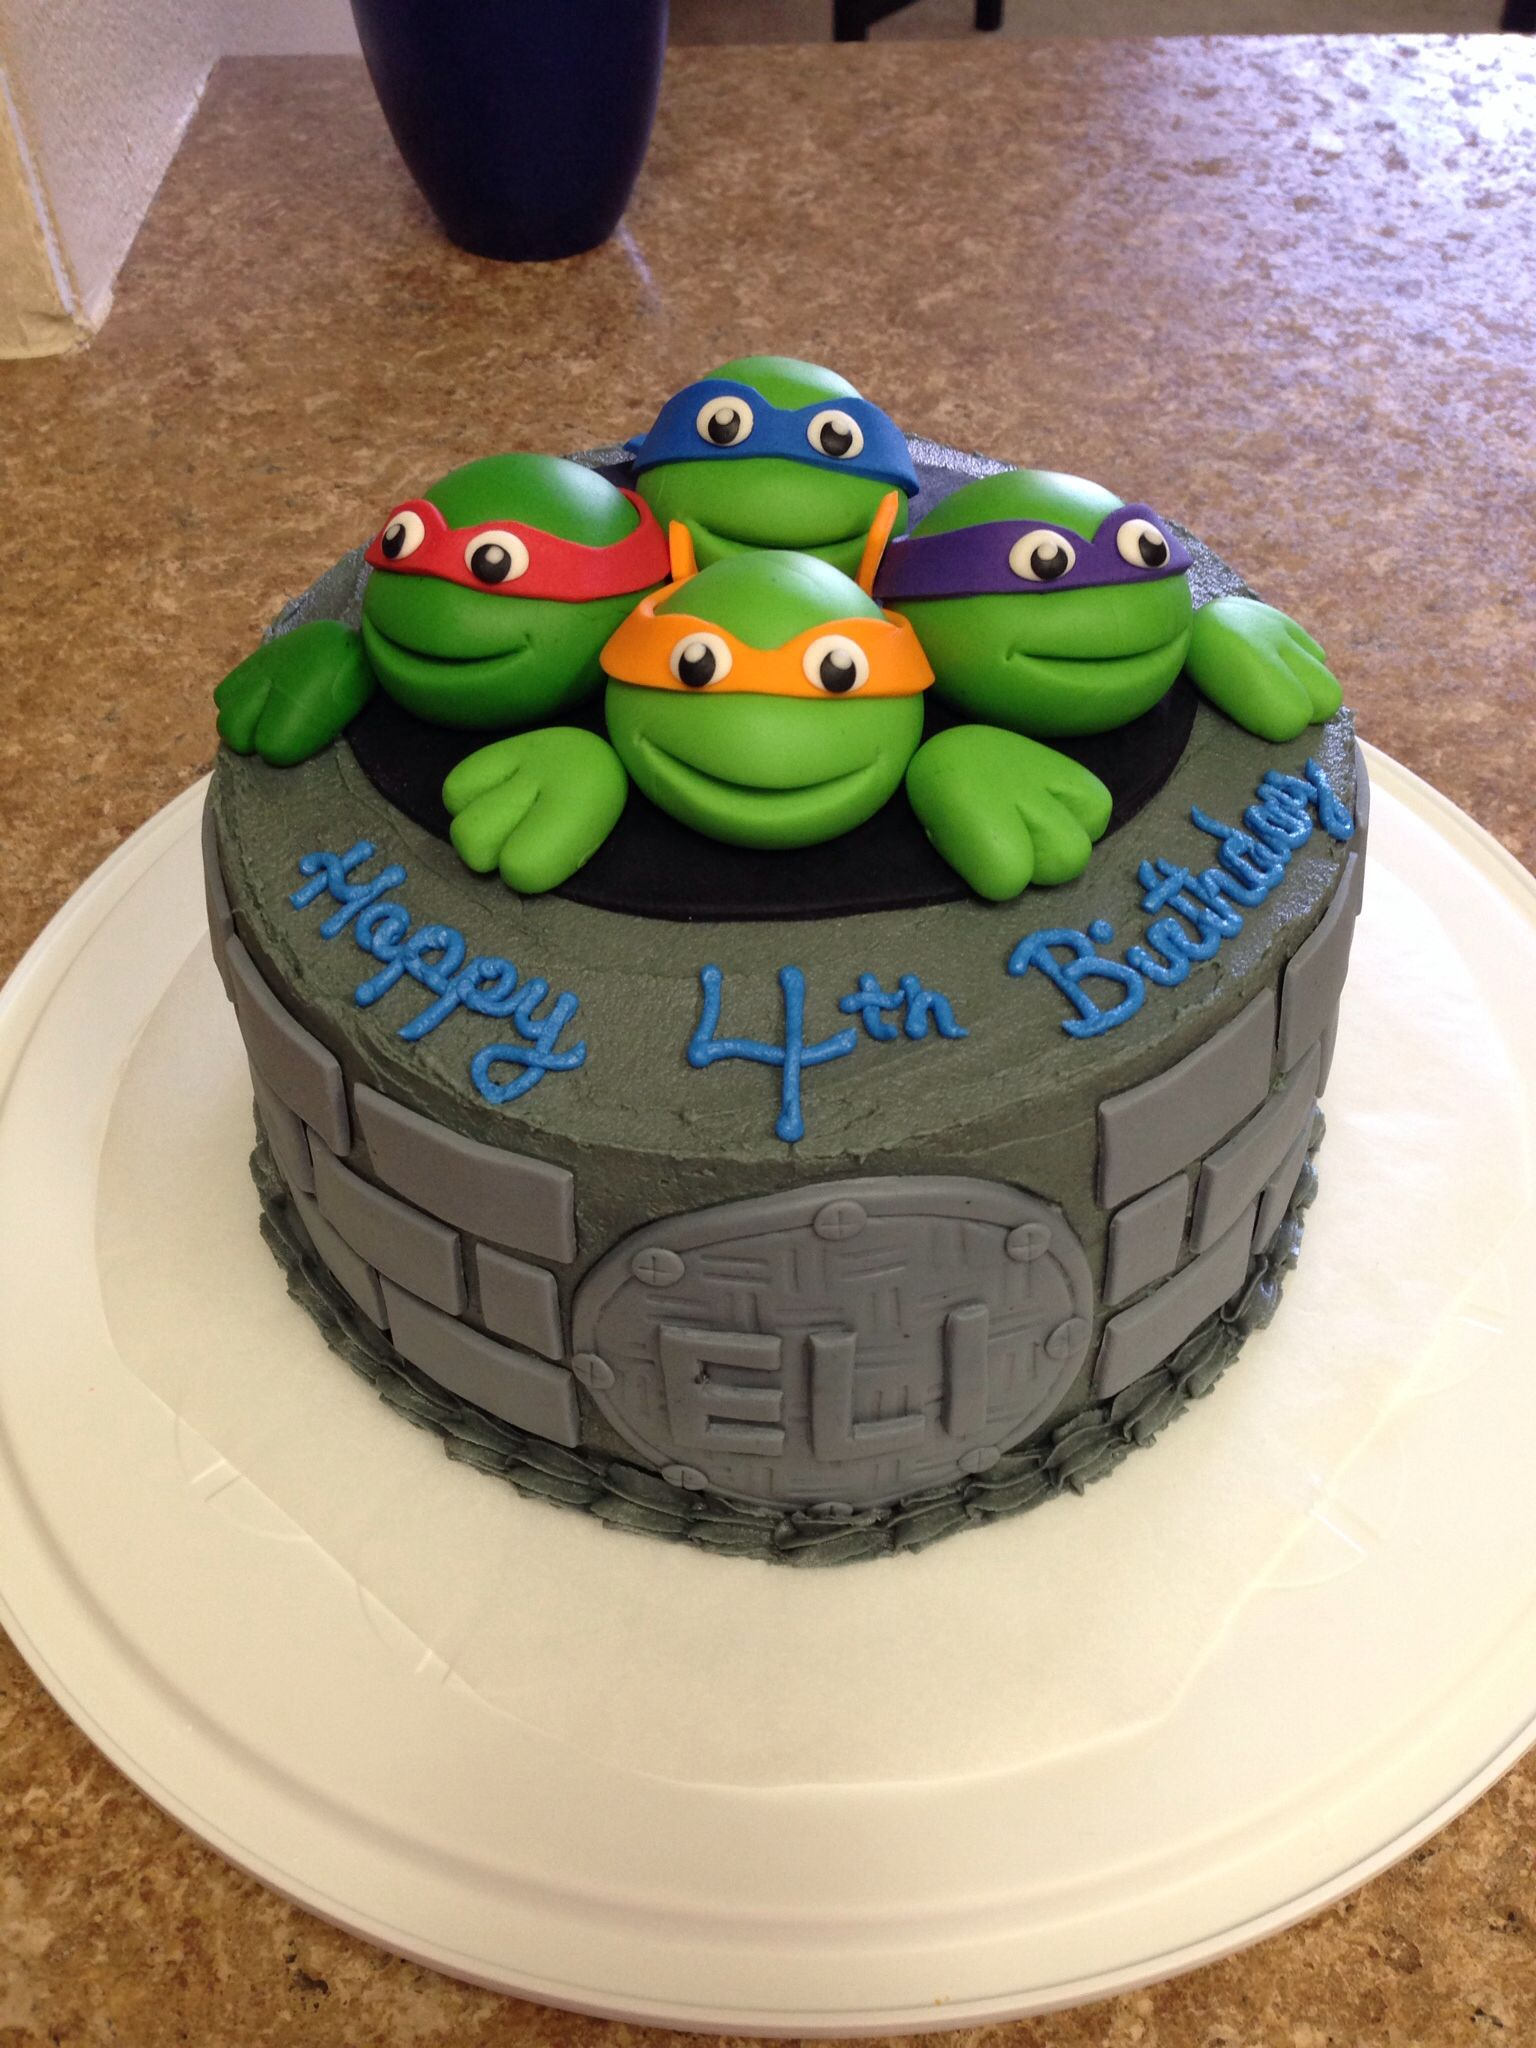 Swell Tmnt Cake I Made For My Sons 4Th Birthday I Used Fondant For The Birthday Cards Printable Riciscafe Filternl